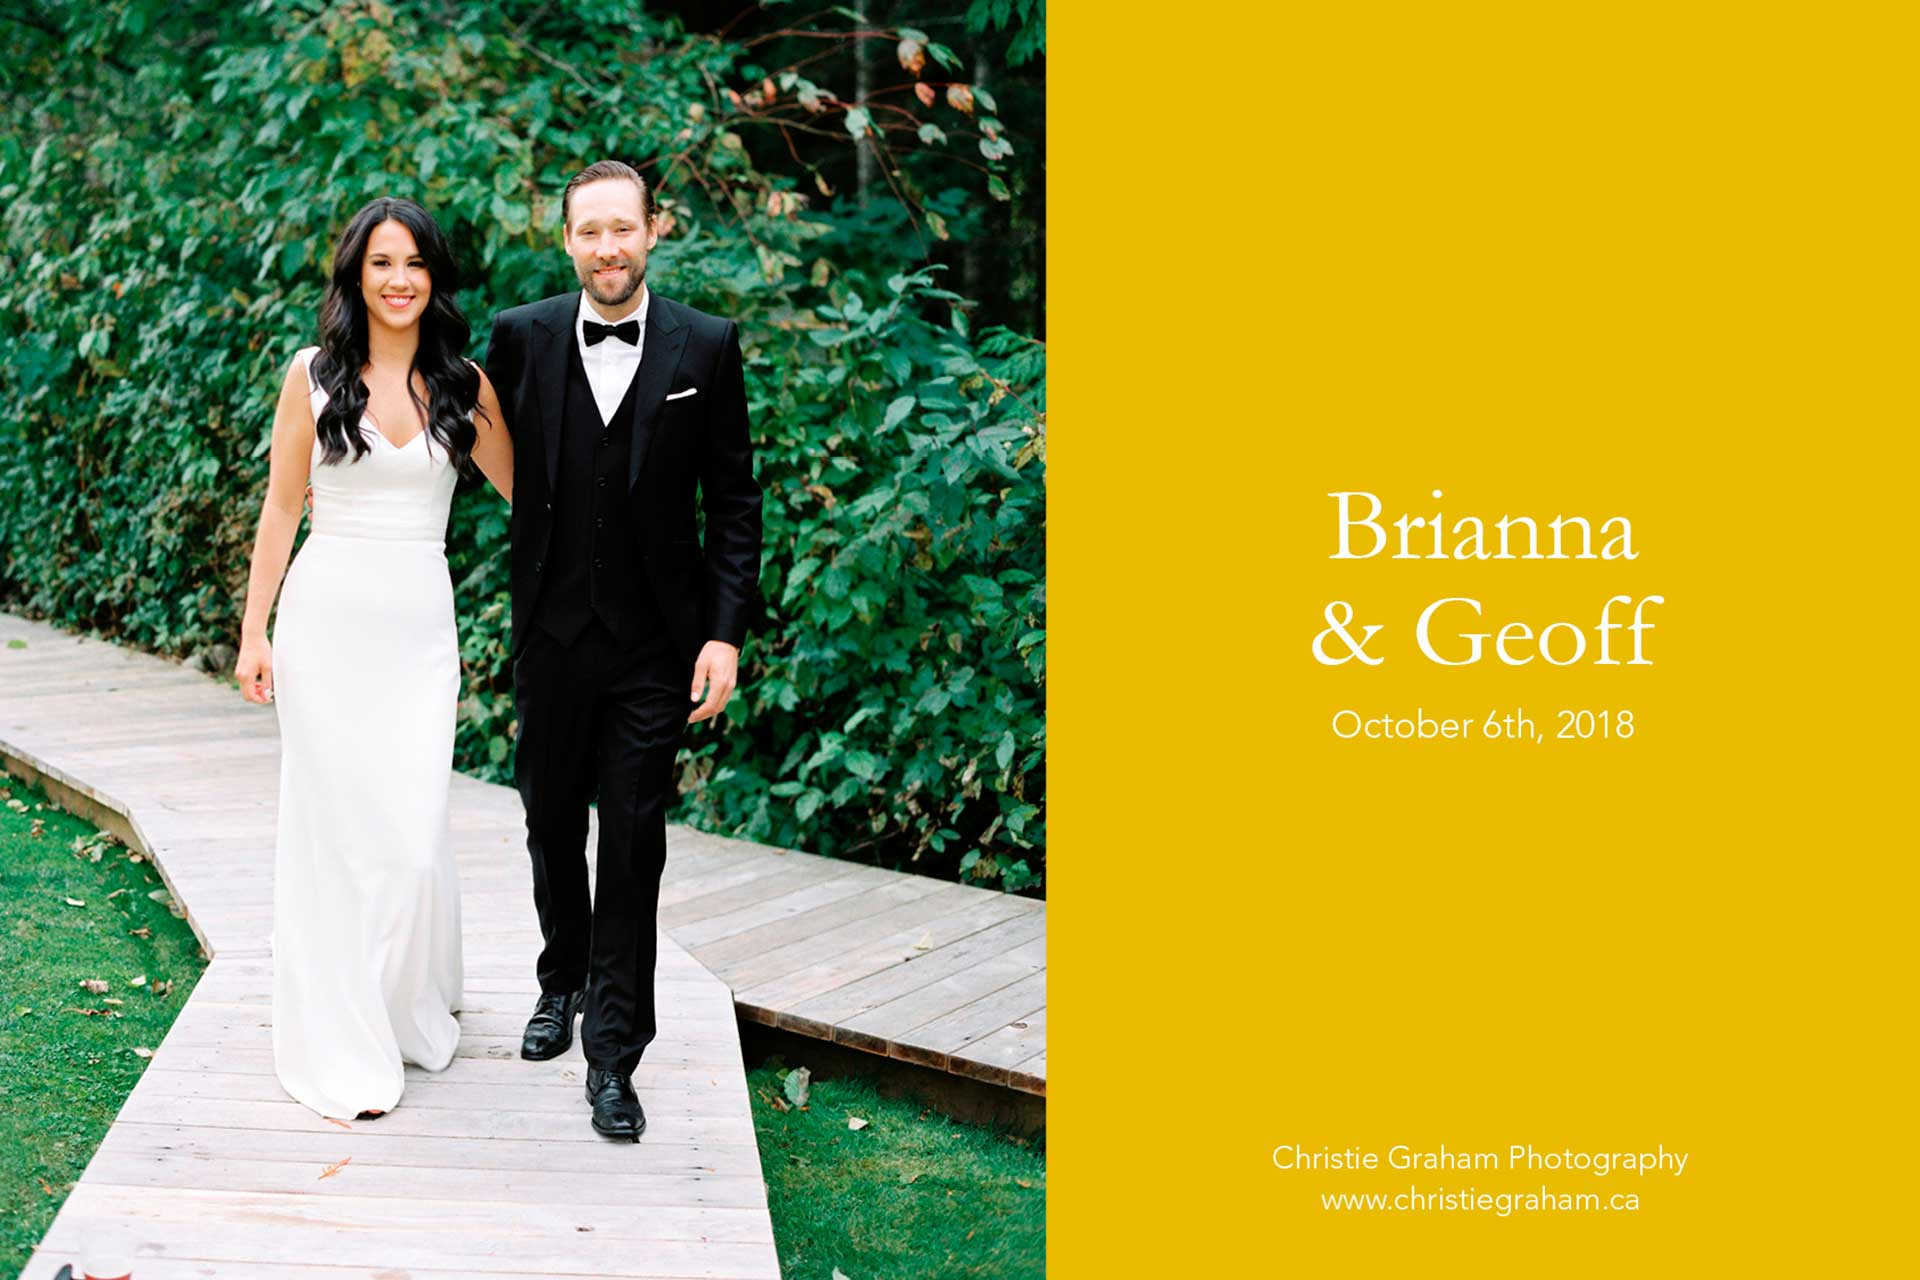 Brianna and Geoff's Wedding